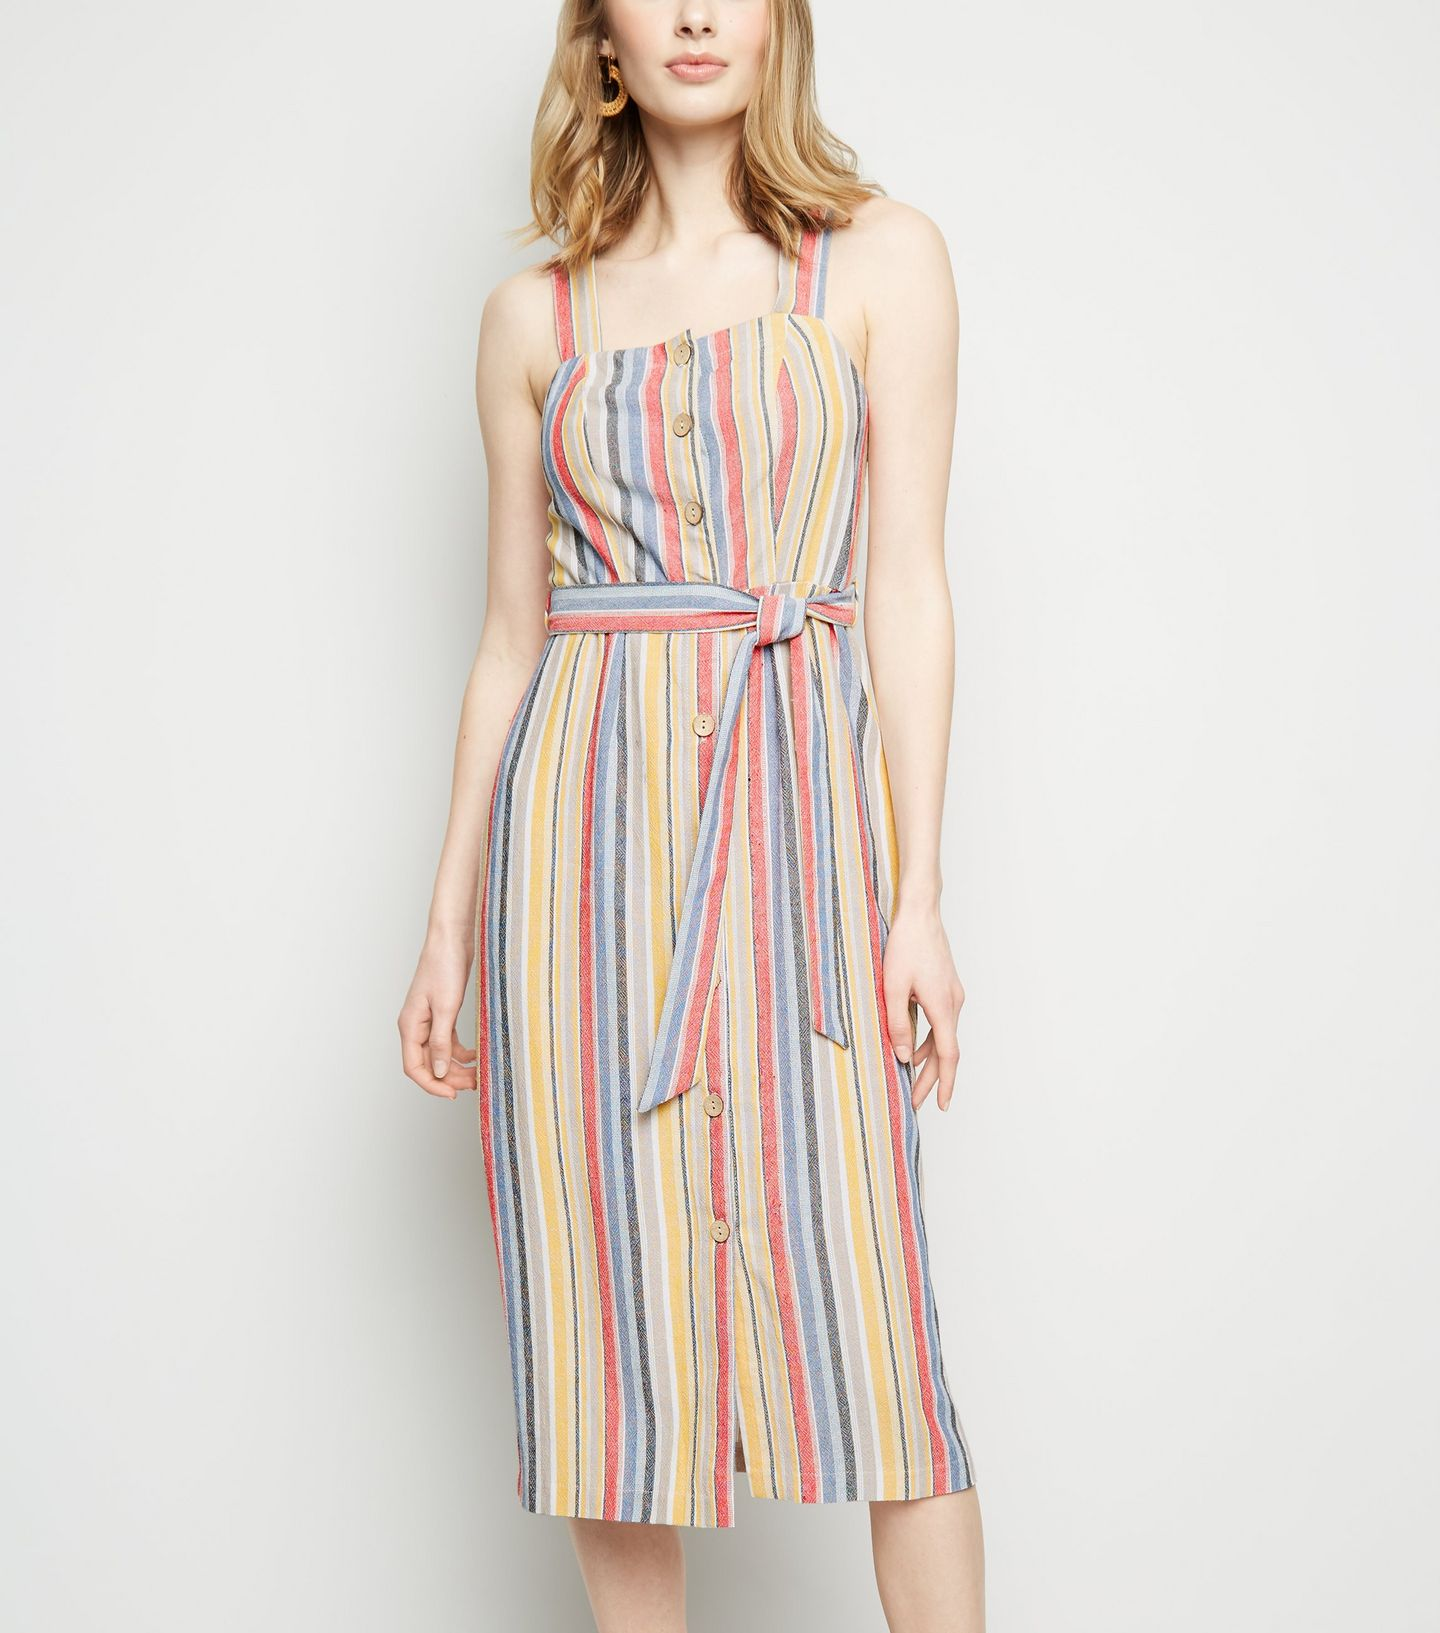 1cbe6f5633 Another New Look piece we are loving lately is this off white stripe tiered  wrap dress from